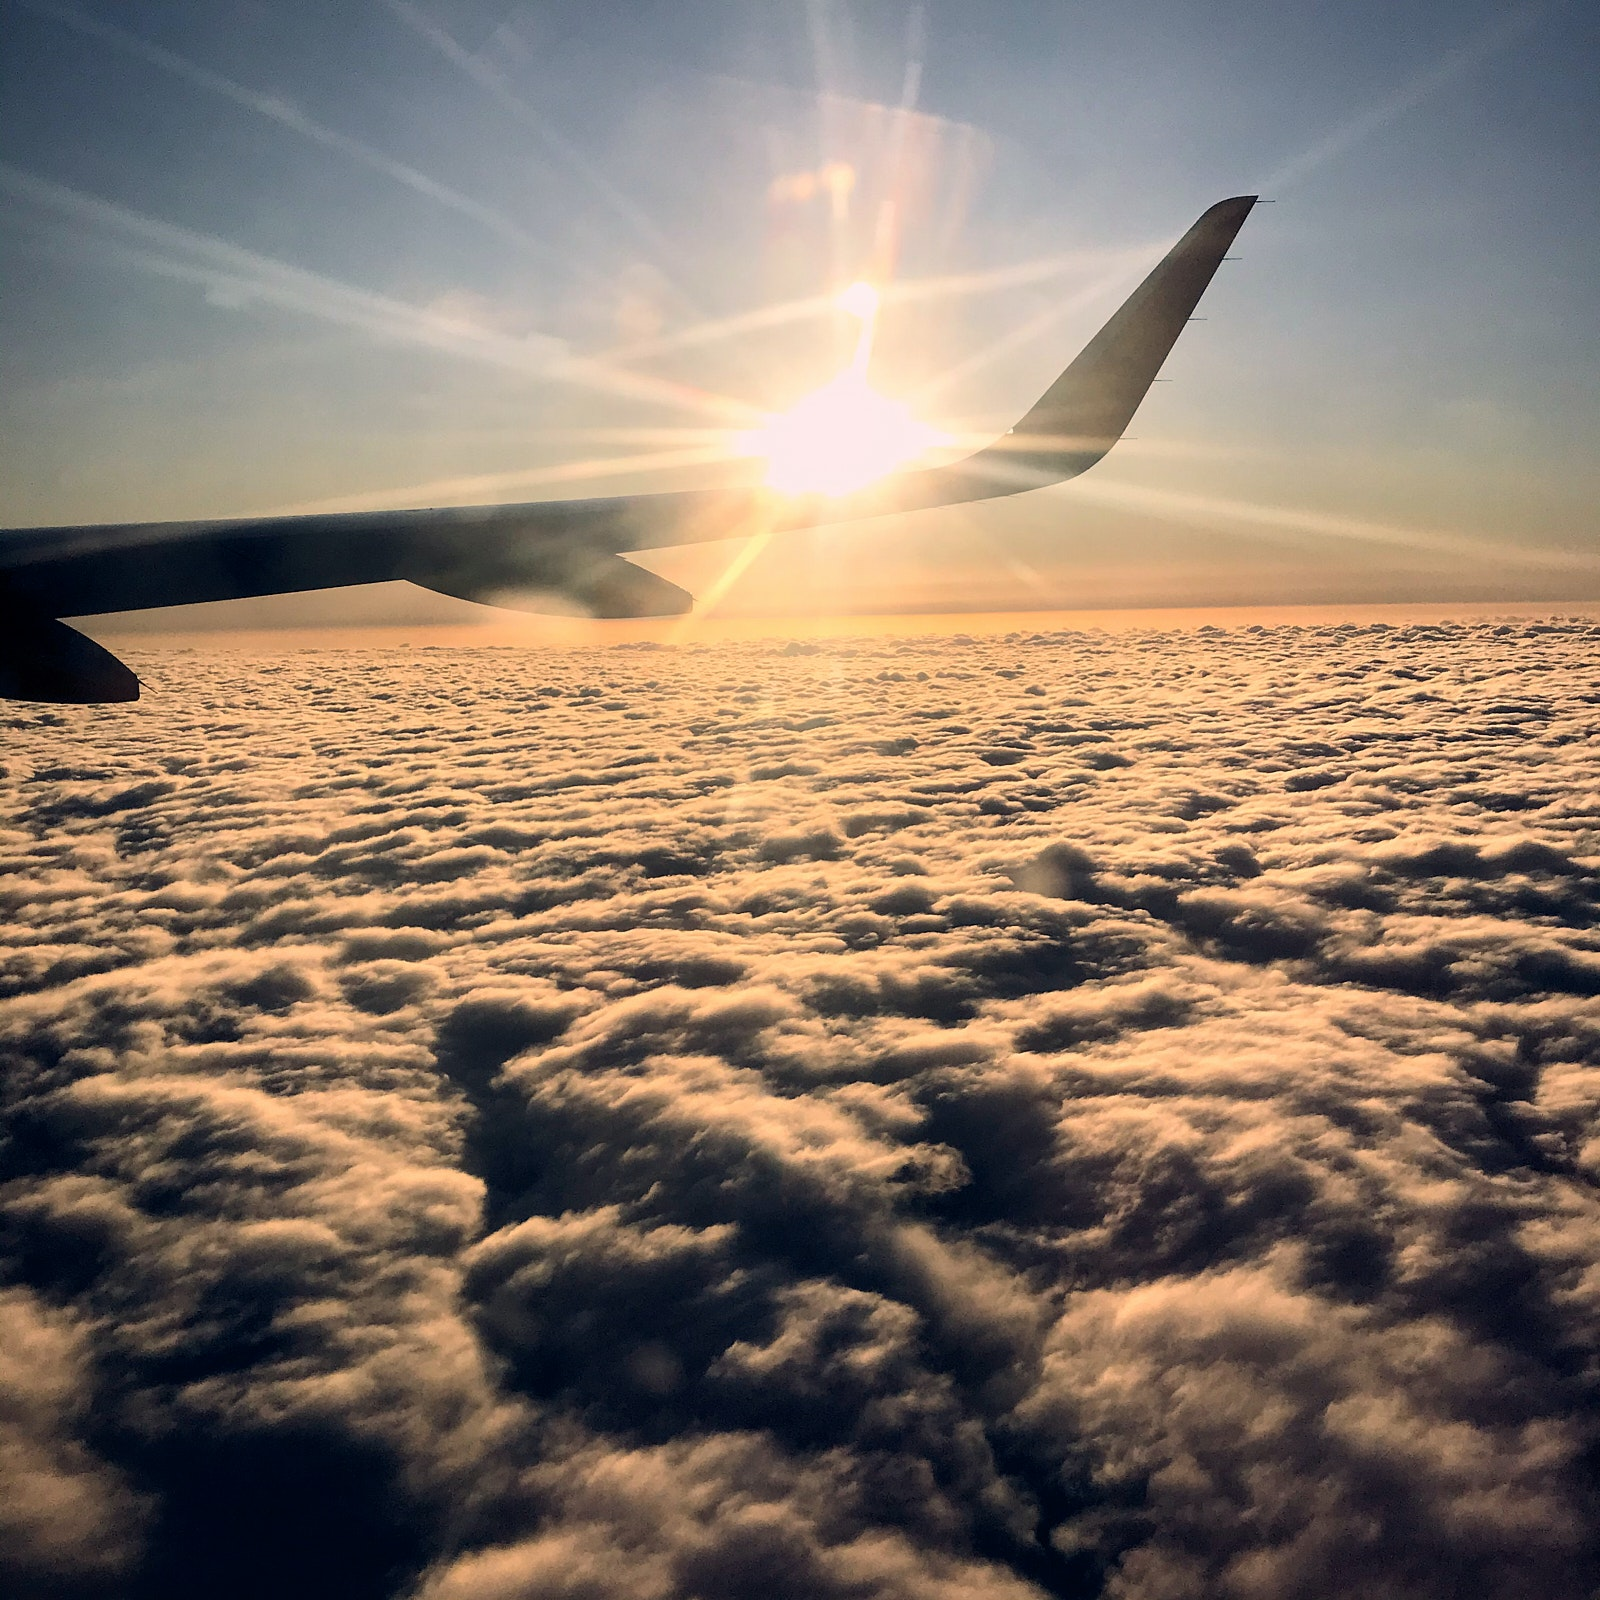 The wing of a plane above the clouds